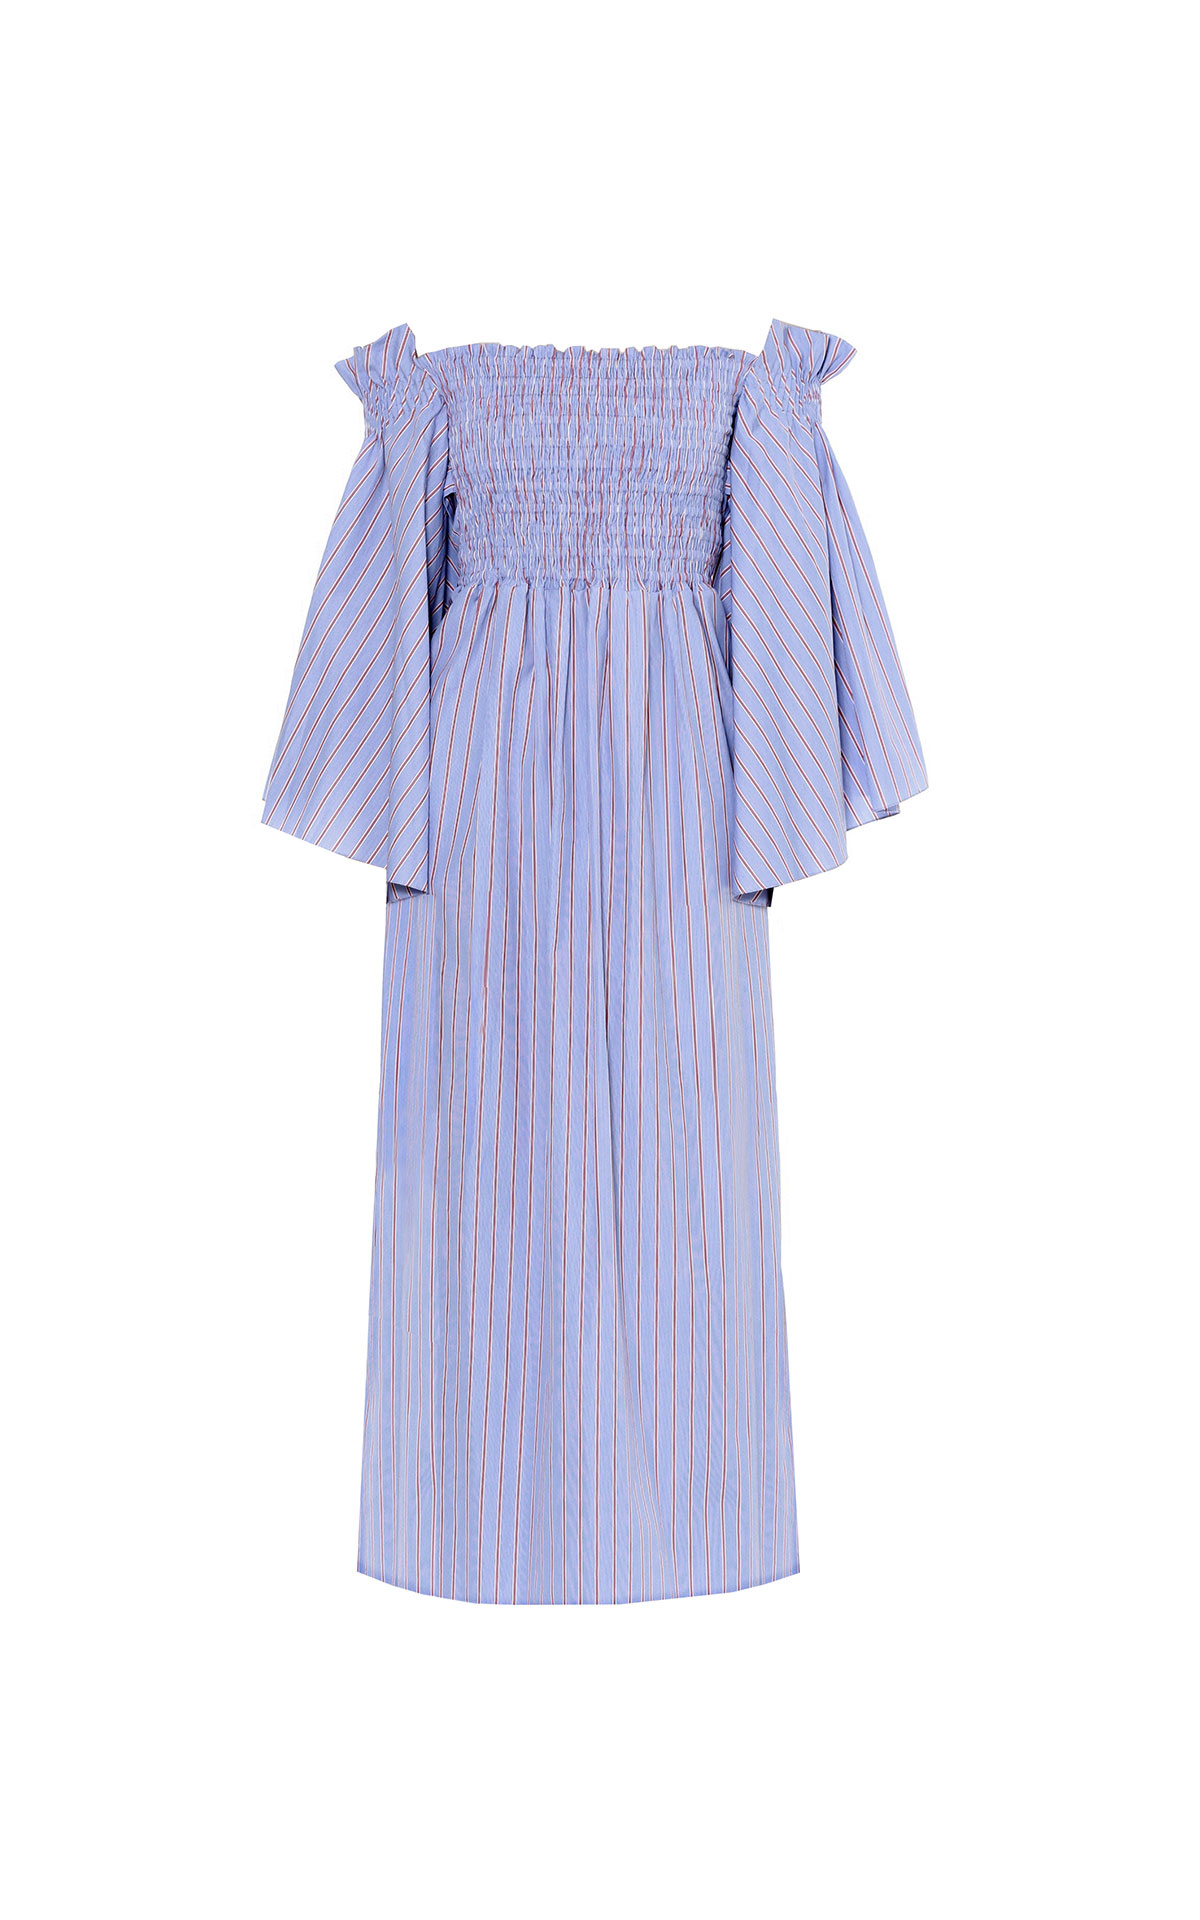 Barefoot Chic Teija Dress with smocked neck from Bicester Village